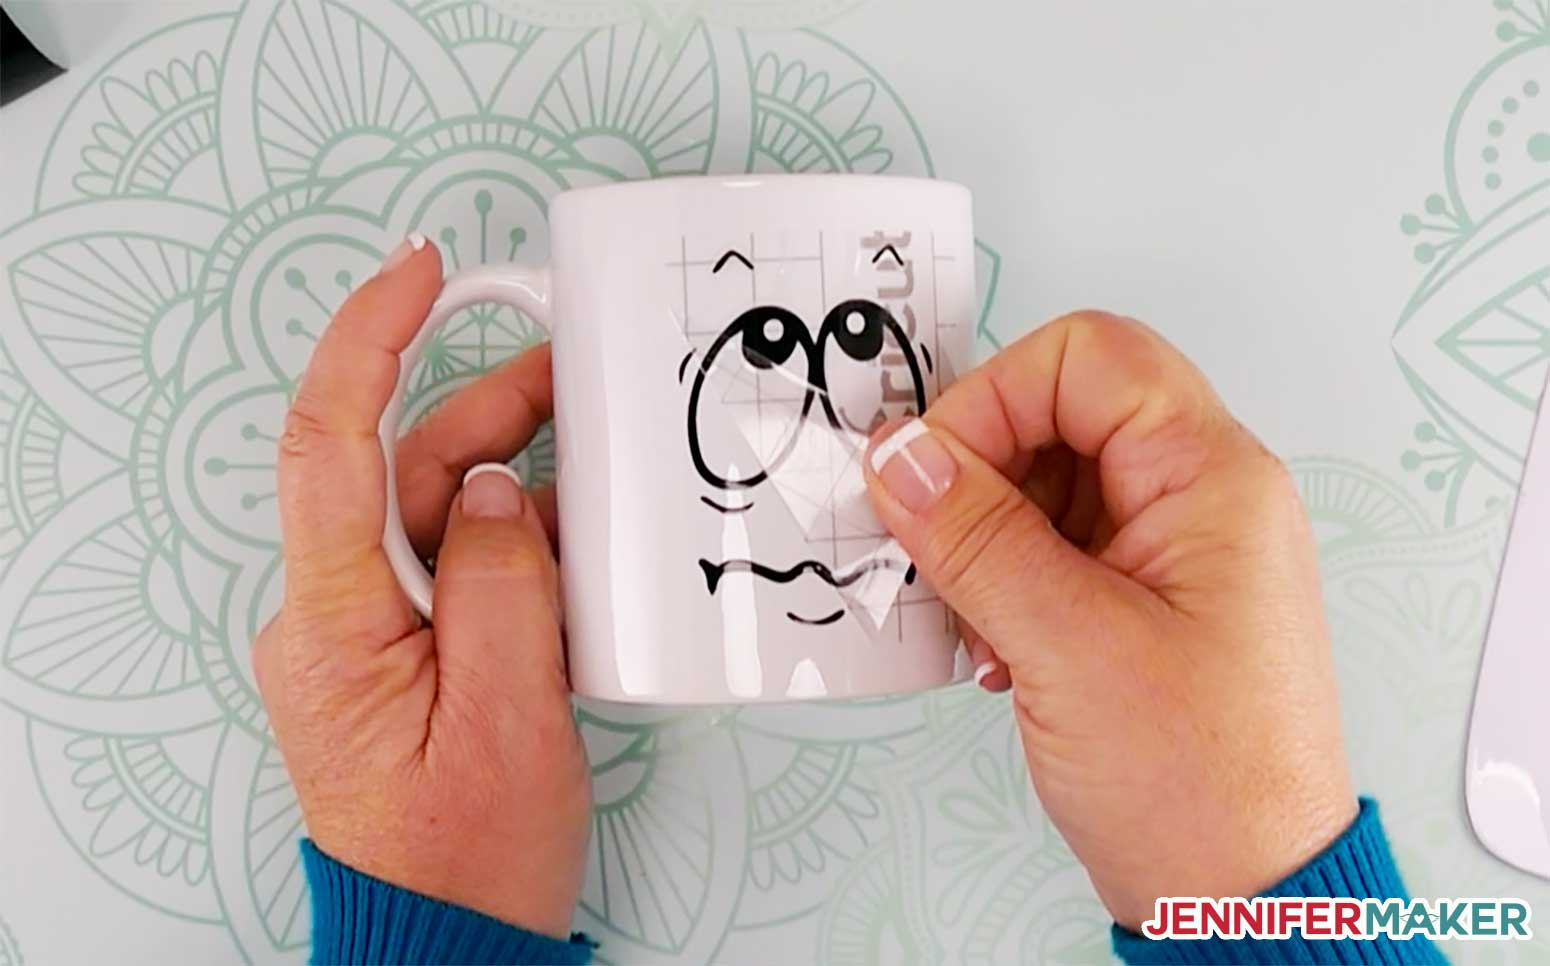 Removing the transfer tape from your vinyl on a Cricut mug